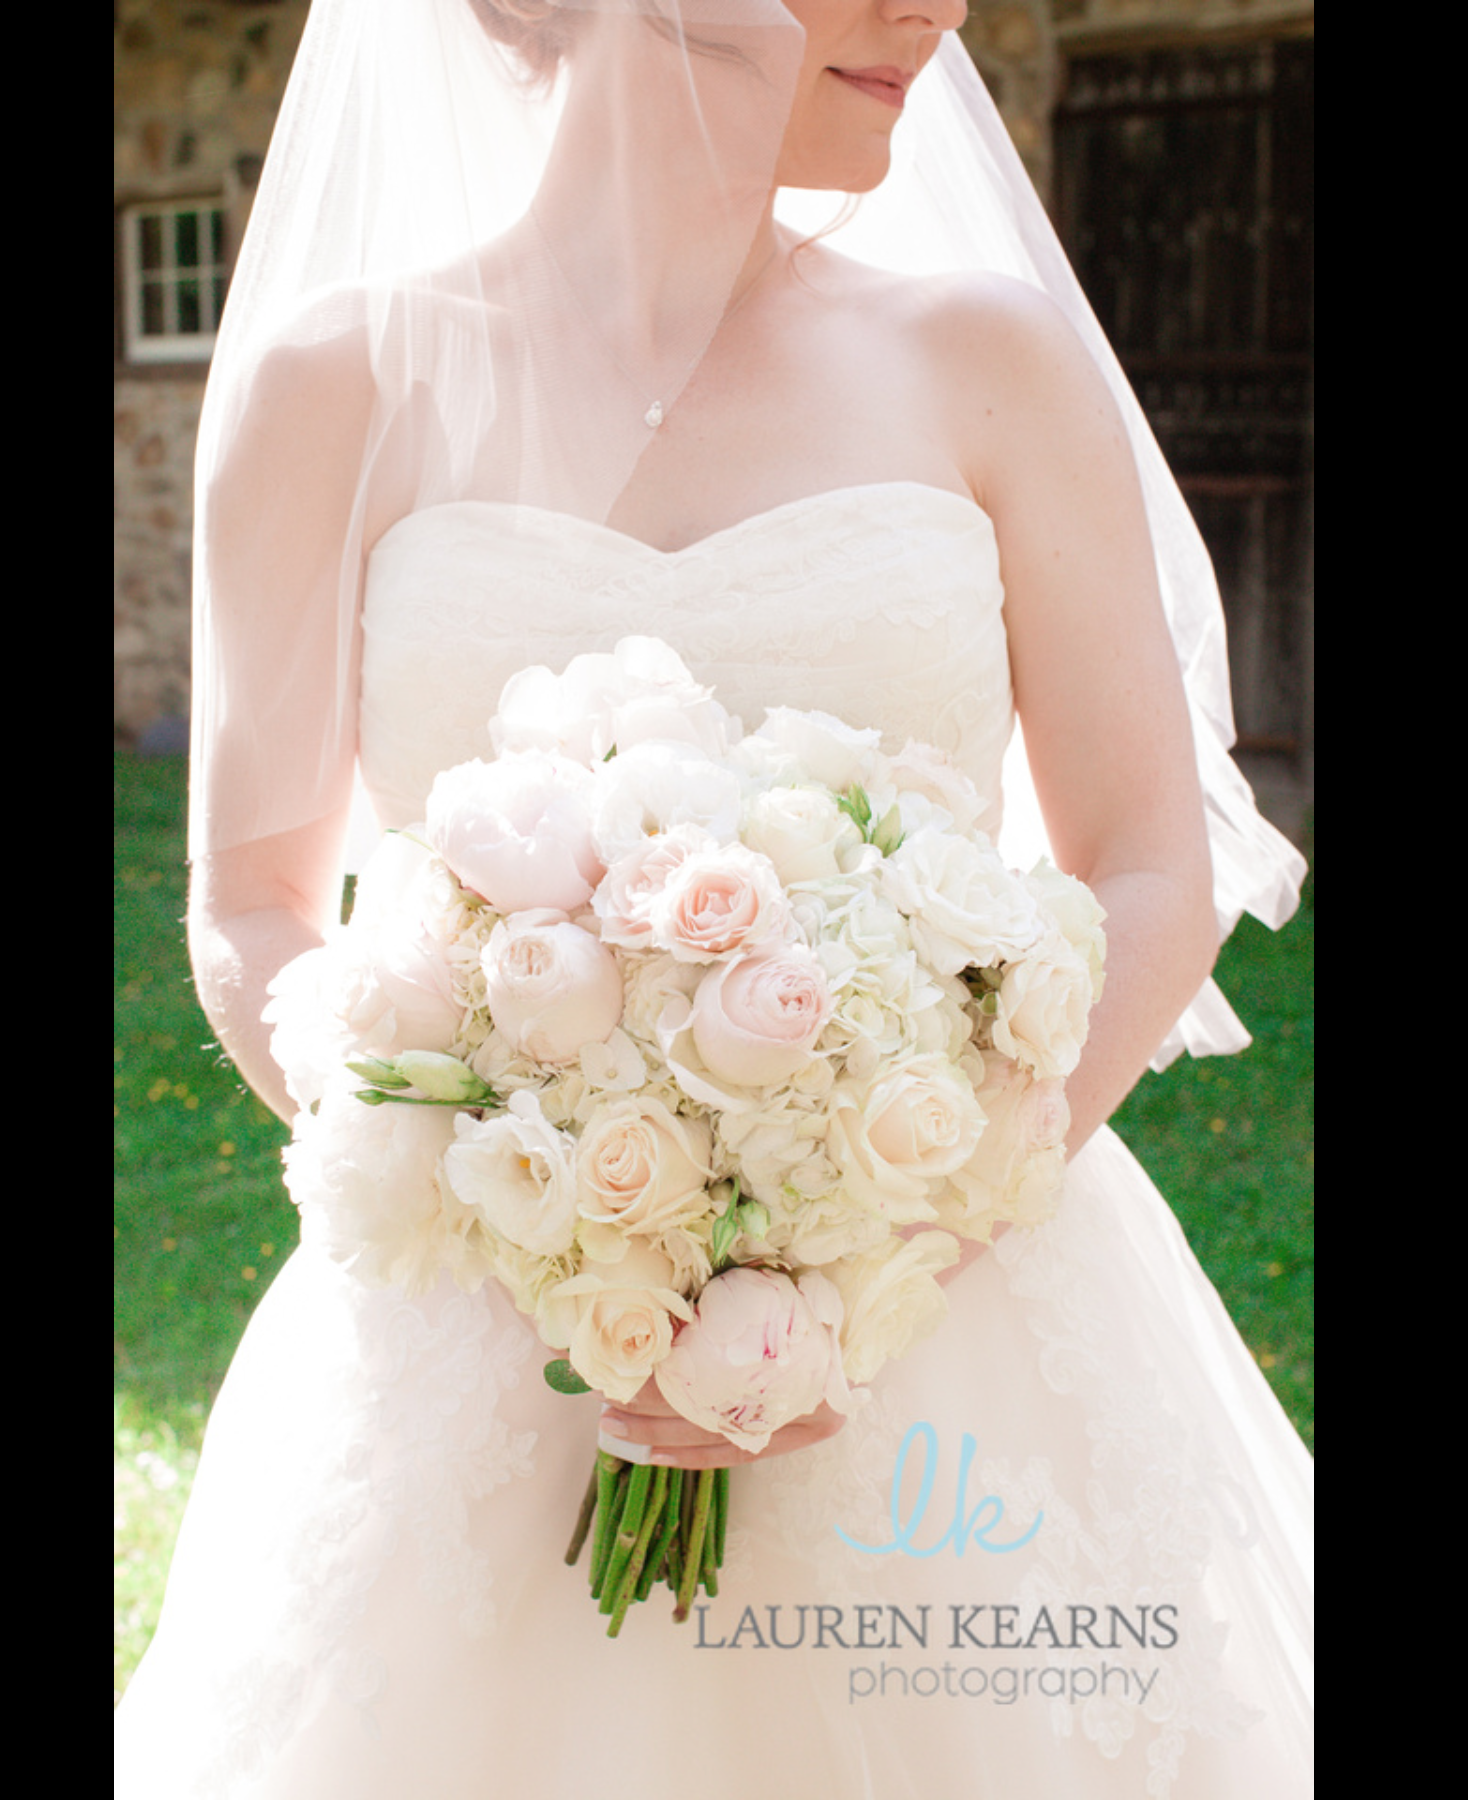 A beautiful round bouquet of imperfect whites